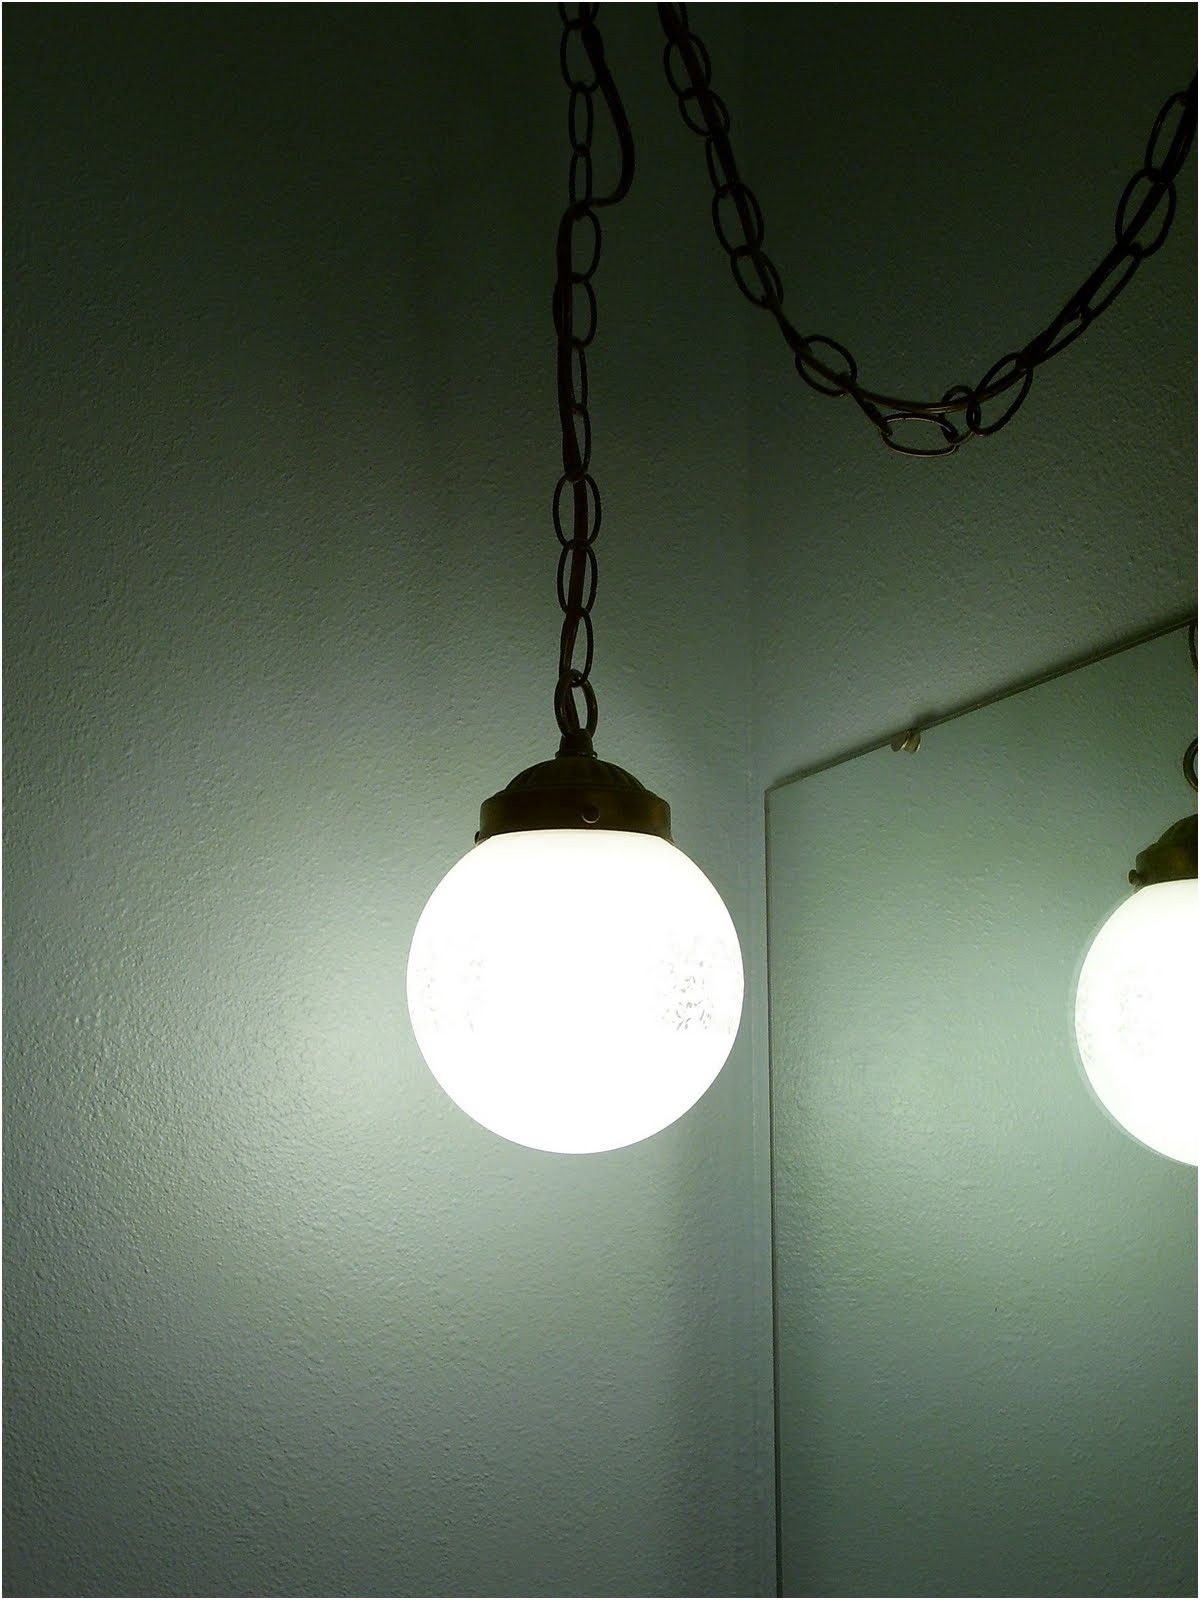 Ordinaire Swag Light Fixture Home Lighting Insight From Double Swag Bathroom Light  Fixtures